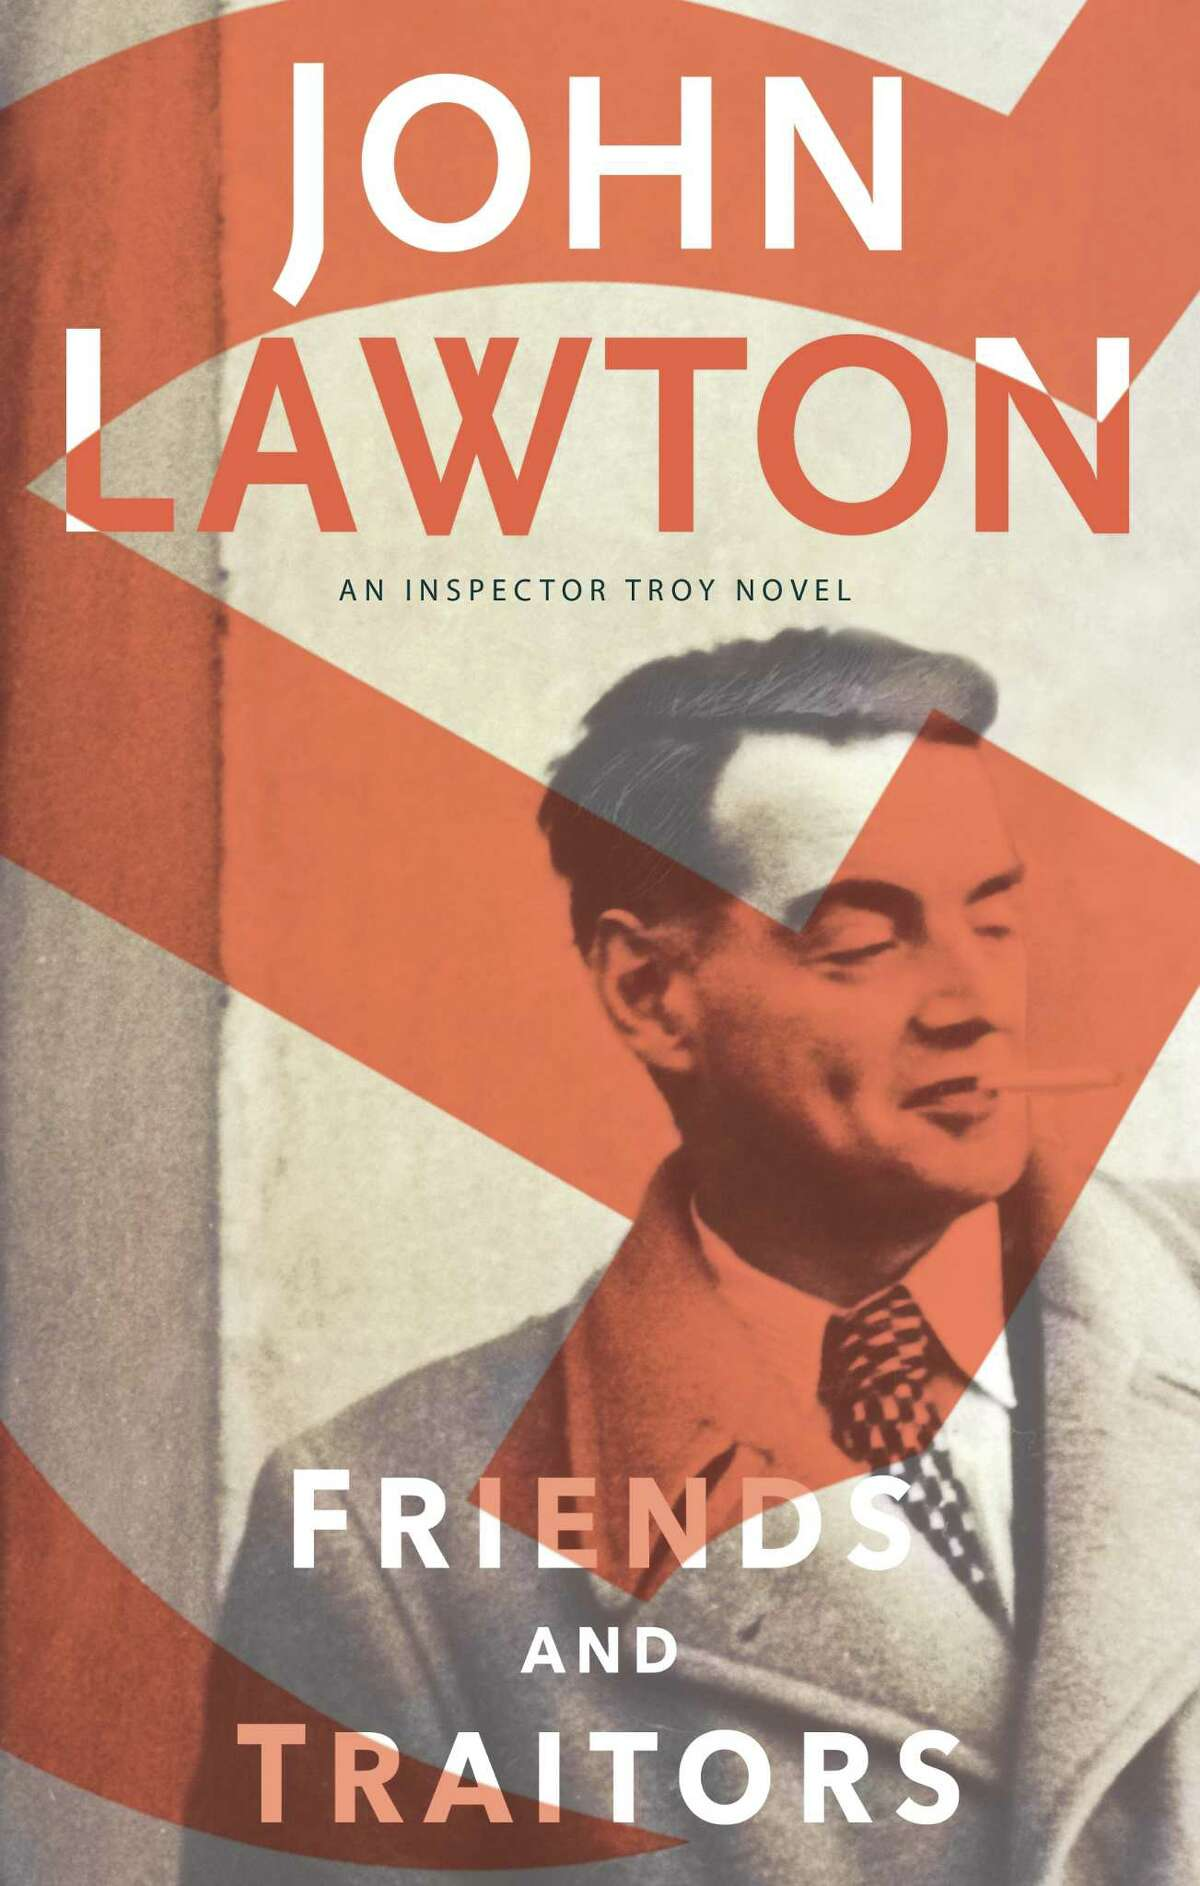 Friends and Traitors: An Inspector Troy Novel